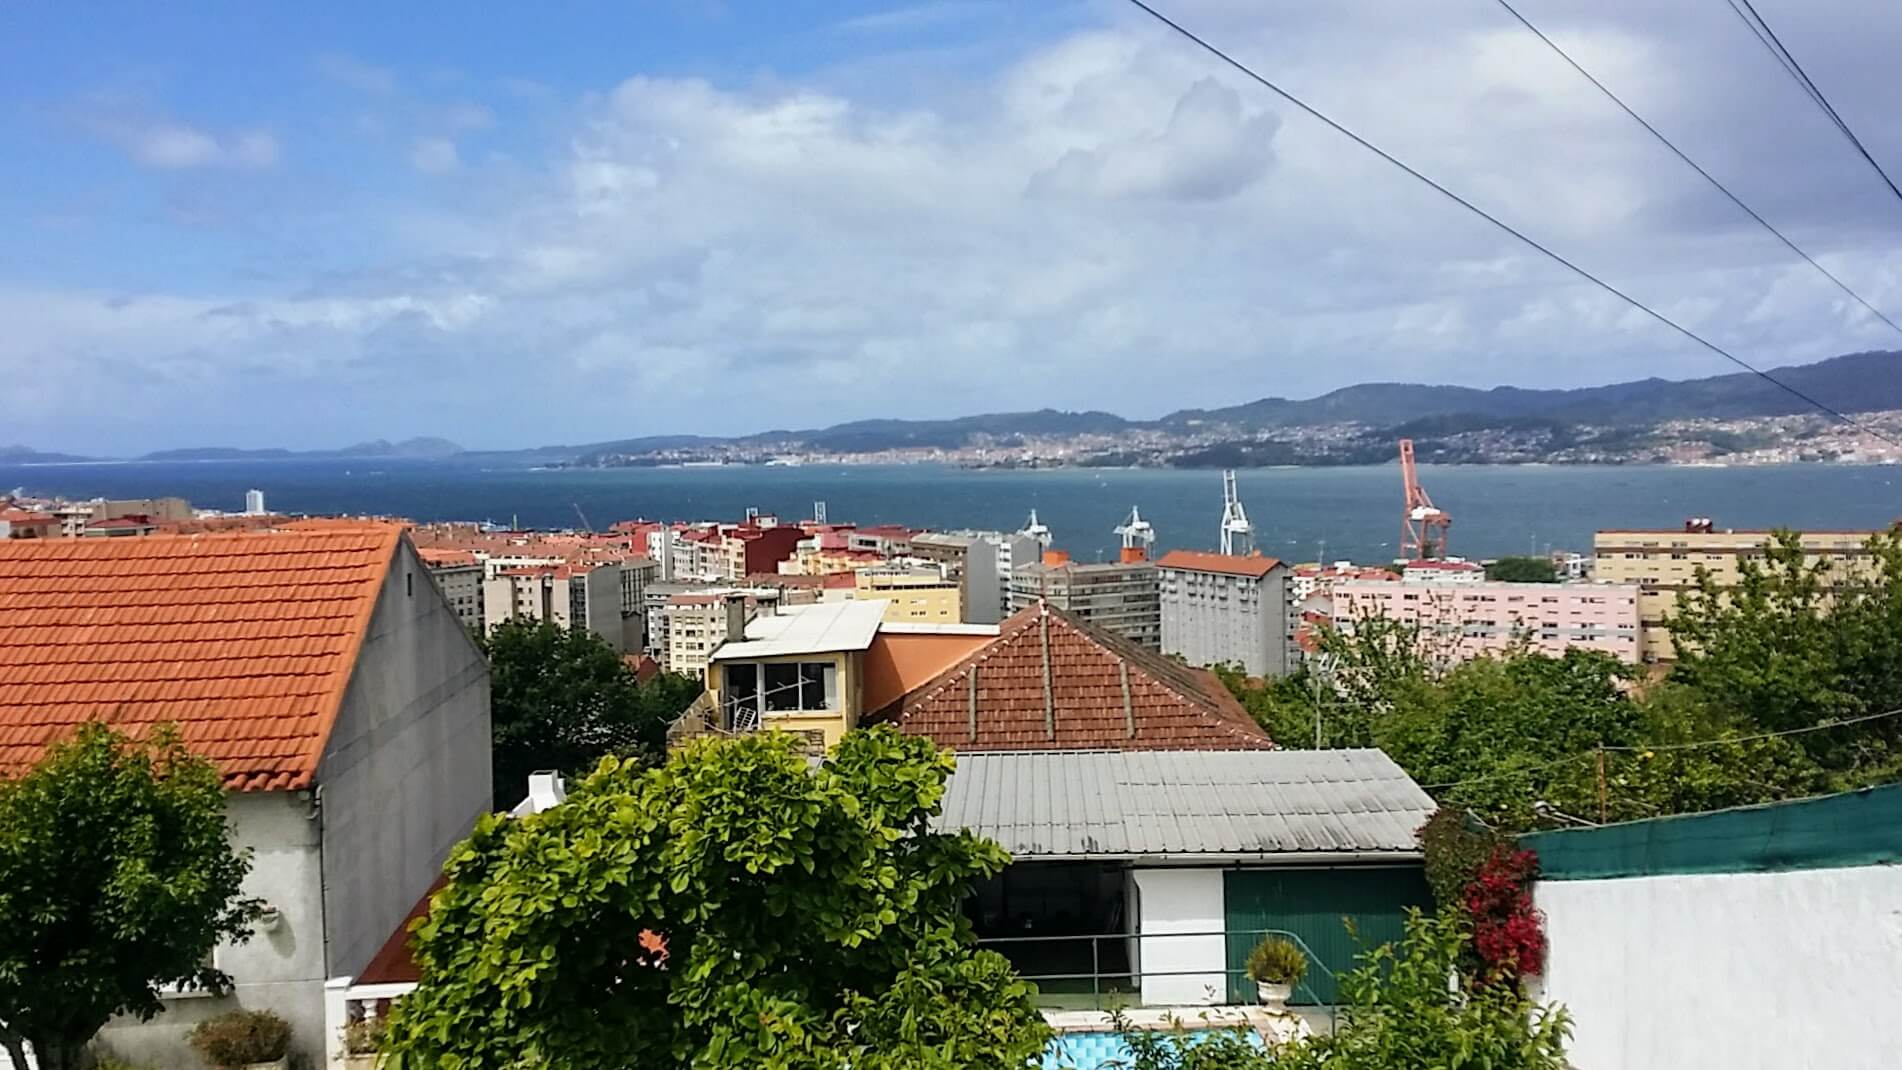 View of the Ría de Vigo, Spain on day twenty-one of Portuguese Way